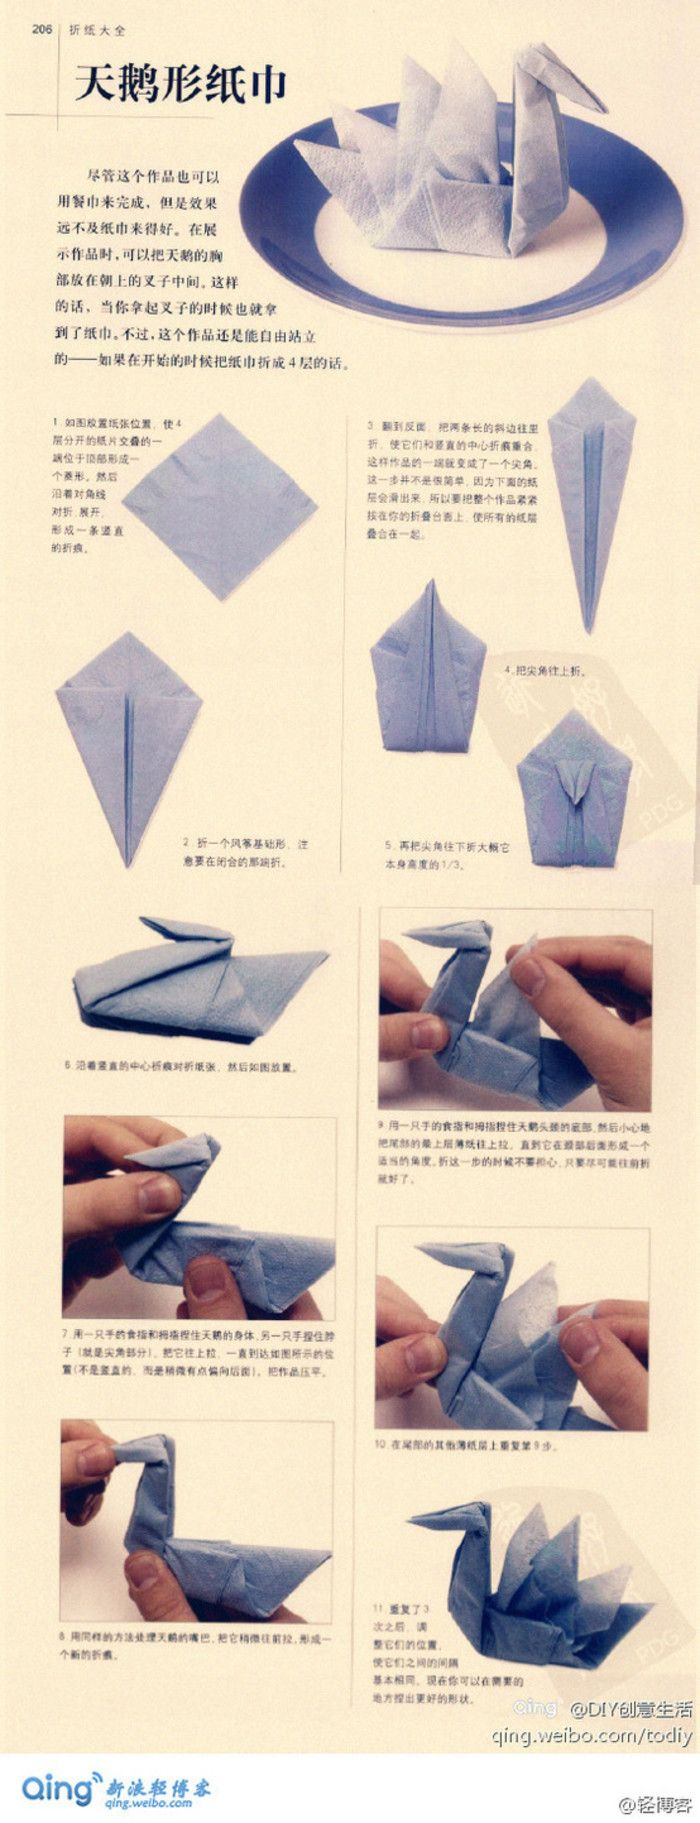 28 Best Creativity Images On Pinterest Origami Ideas Crafts And Folding Diagram 1 Of 3 Scottish Terrier Dog Money Napkin Swan